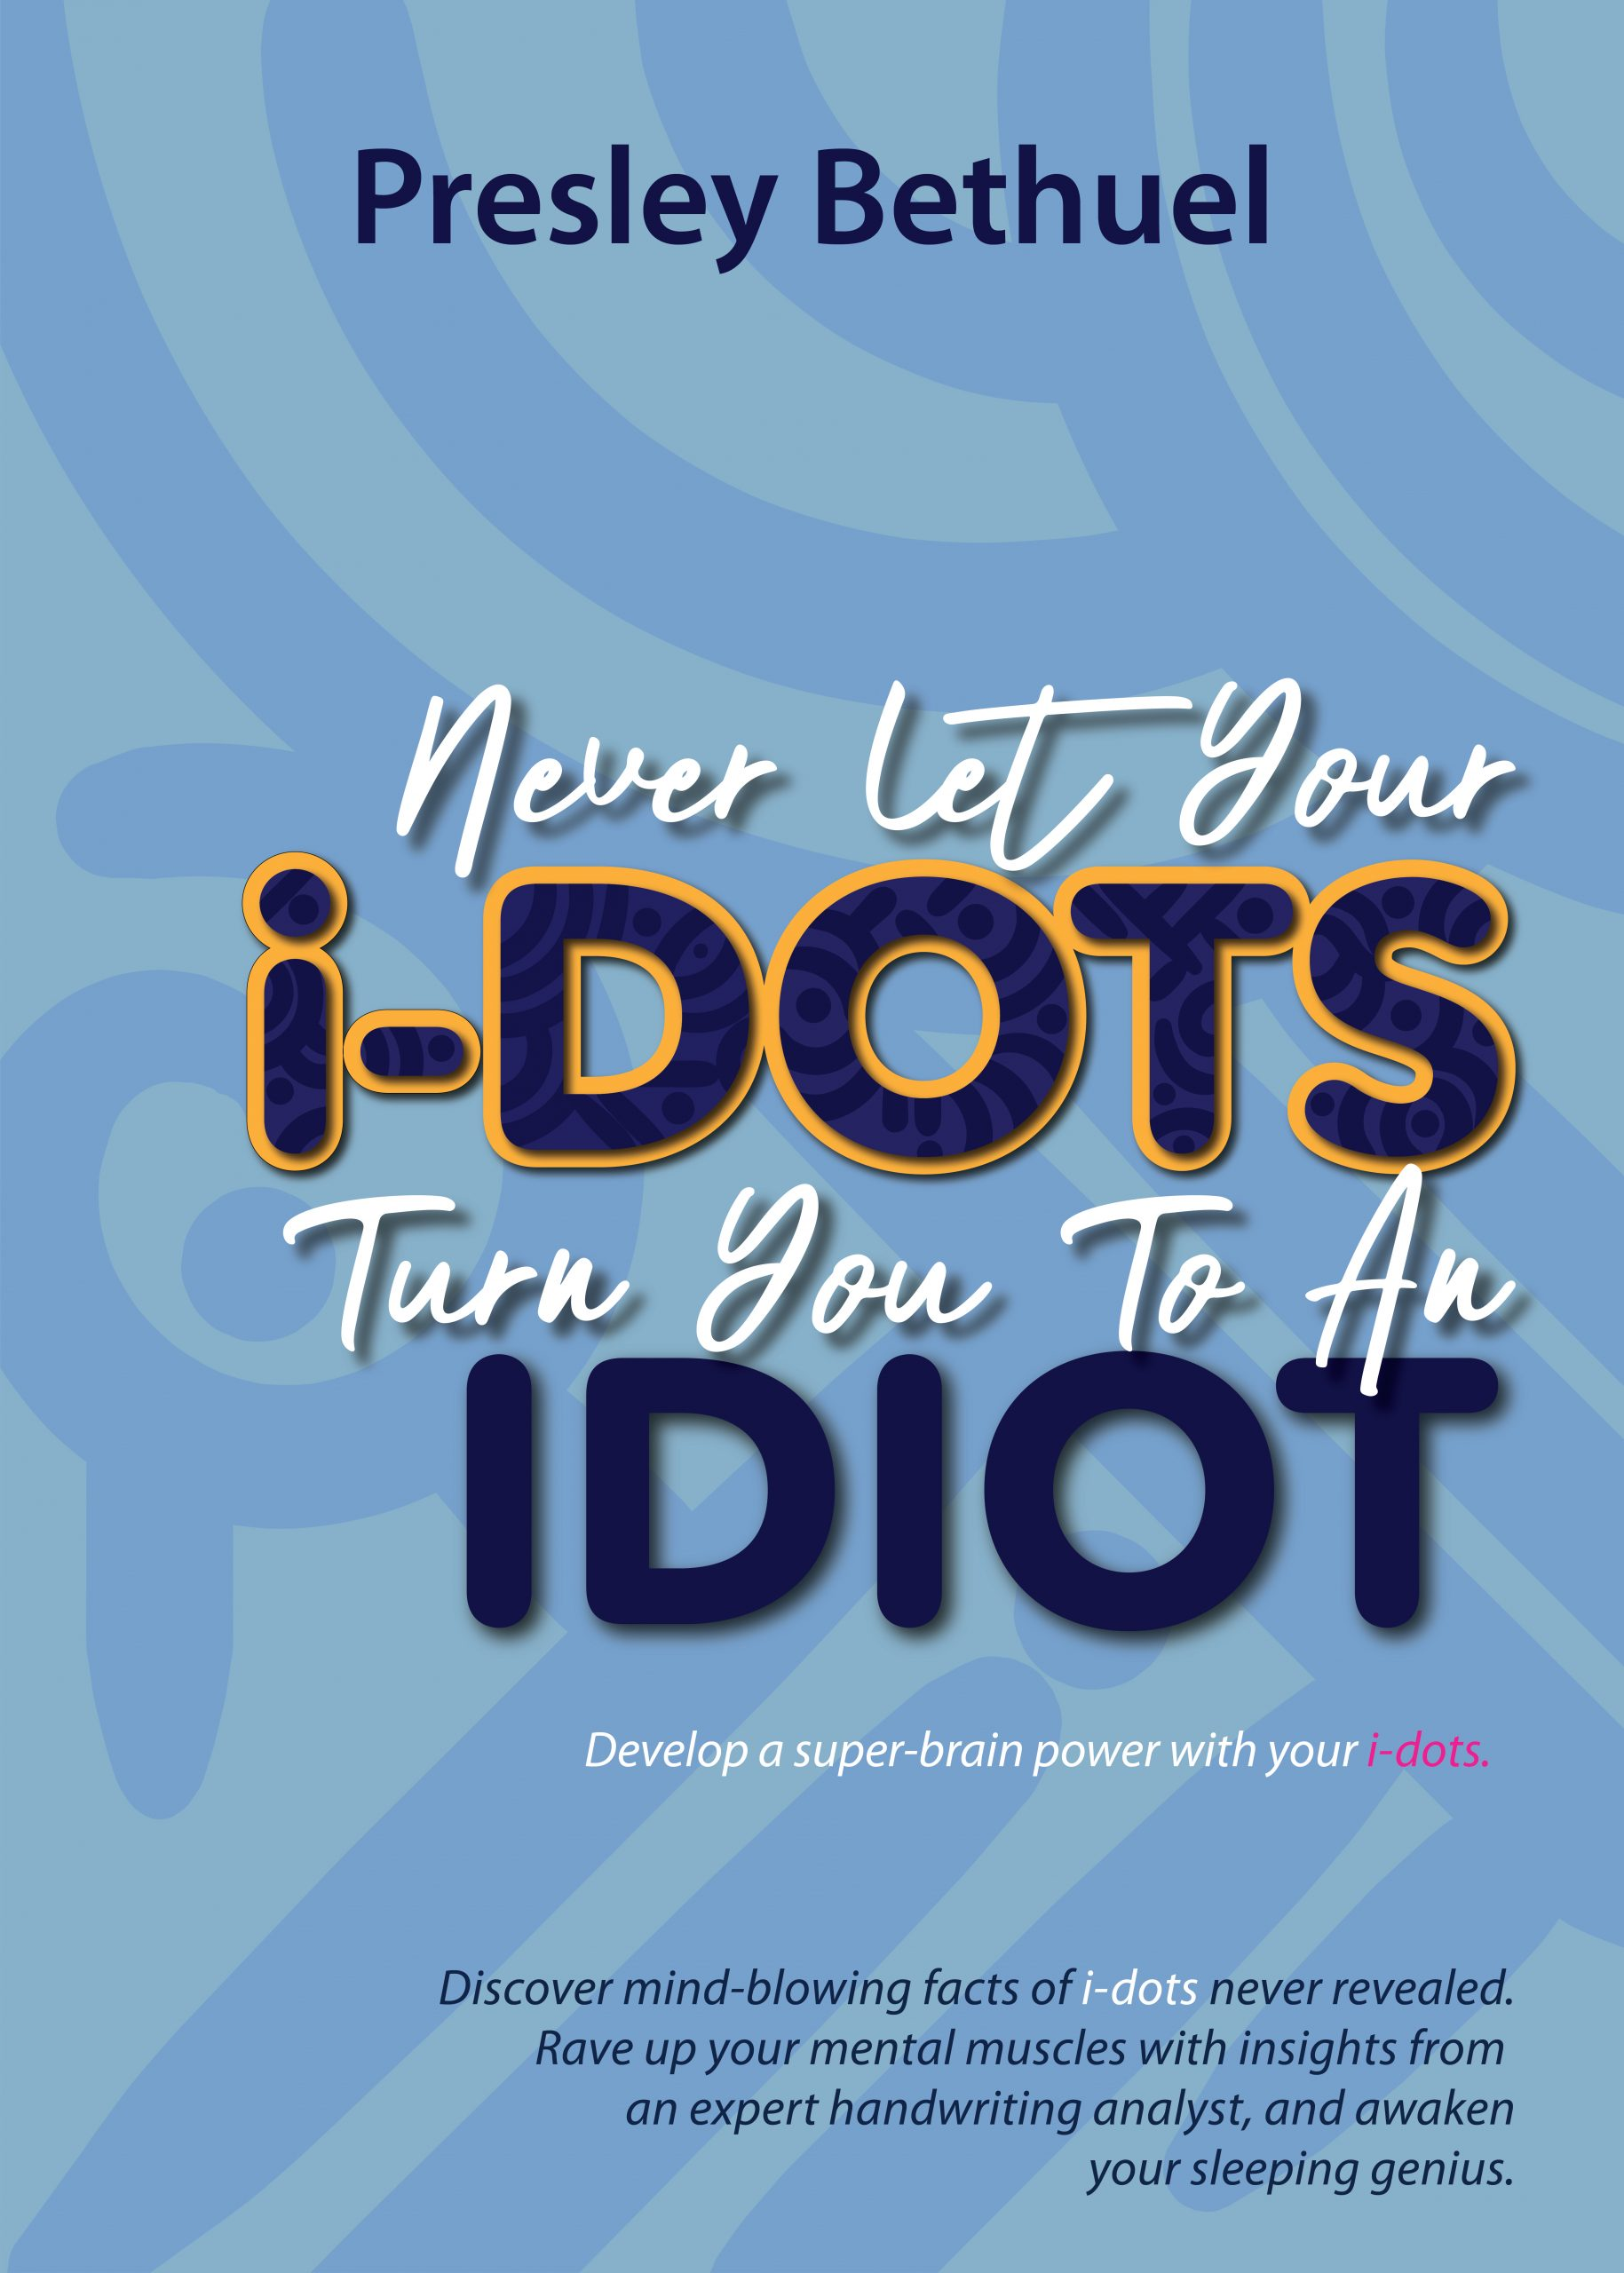 Cover Design -Never let your i-dots